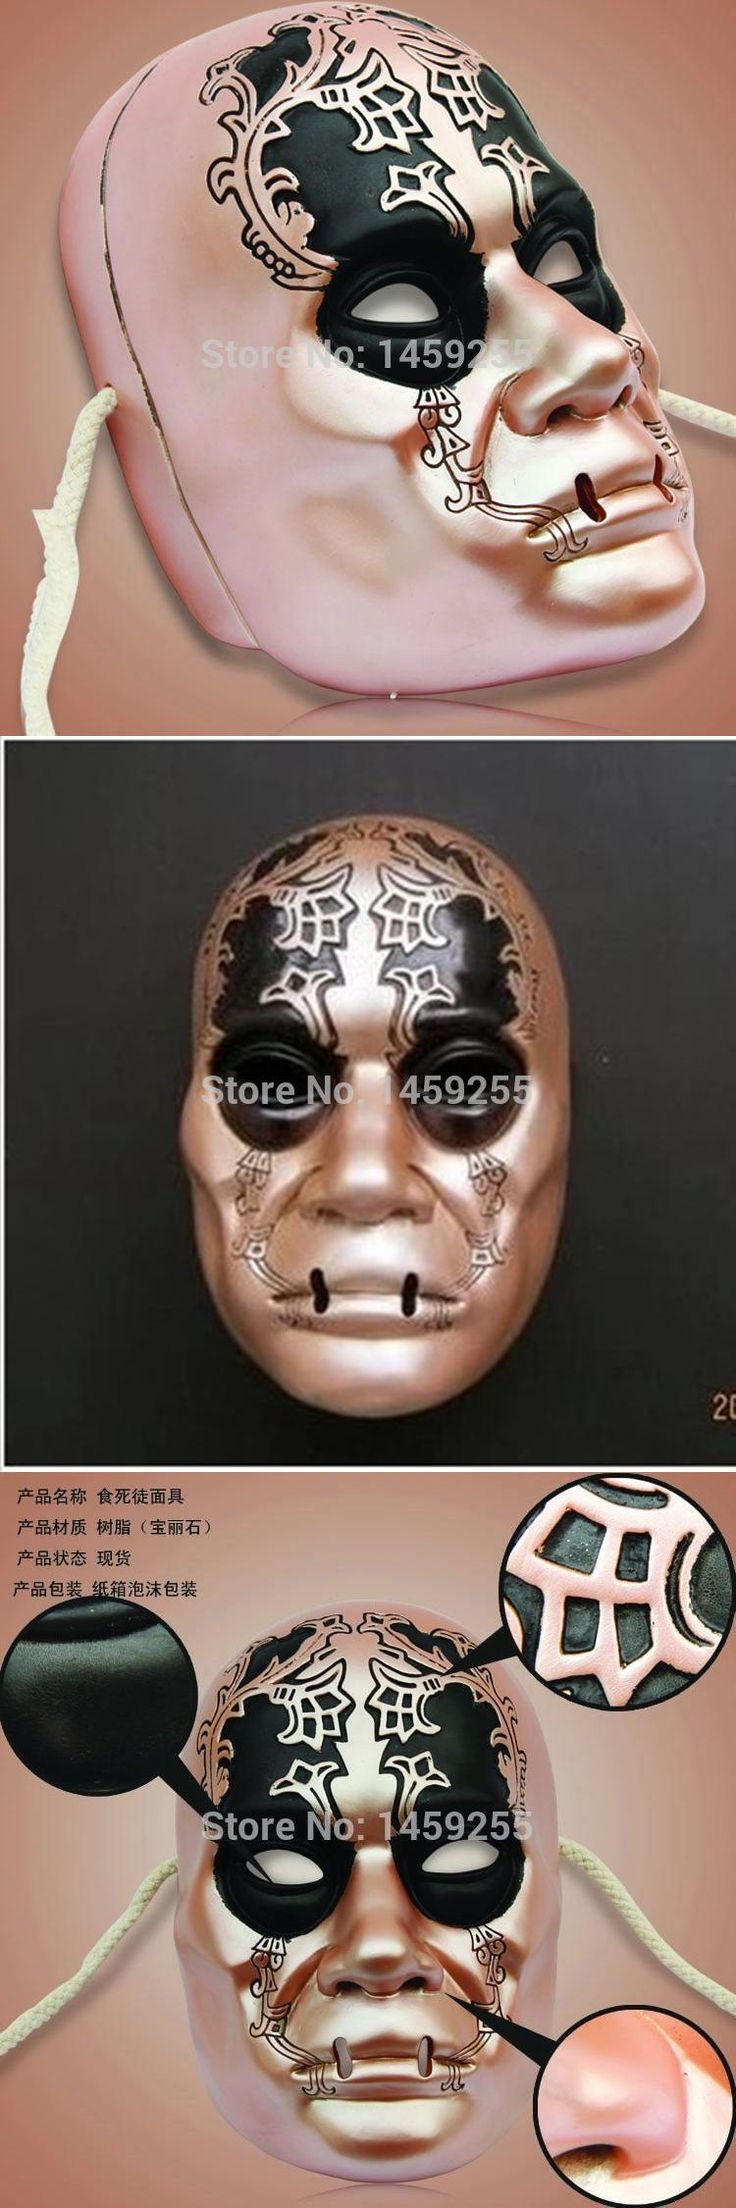 HOT!Resin Harry Potter Death Eater Mask hand made Replica Cosplay Halloween gift masquerade masks